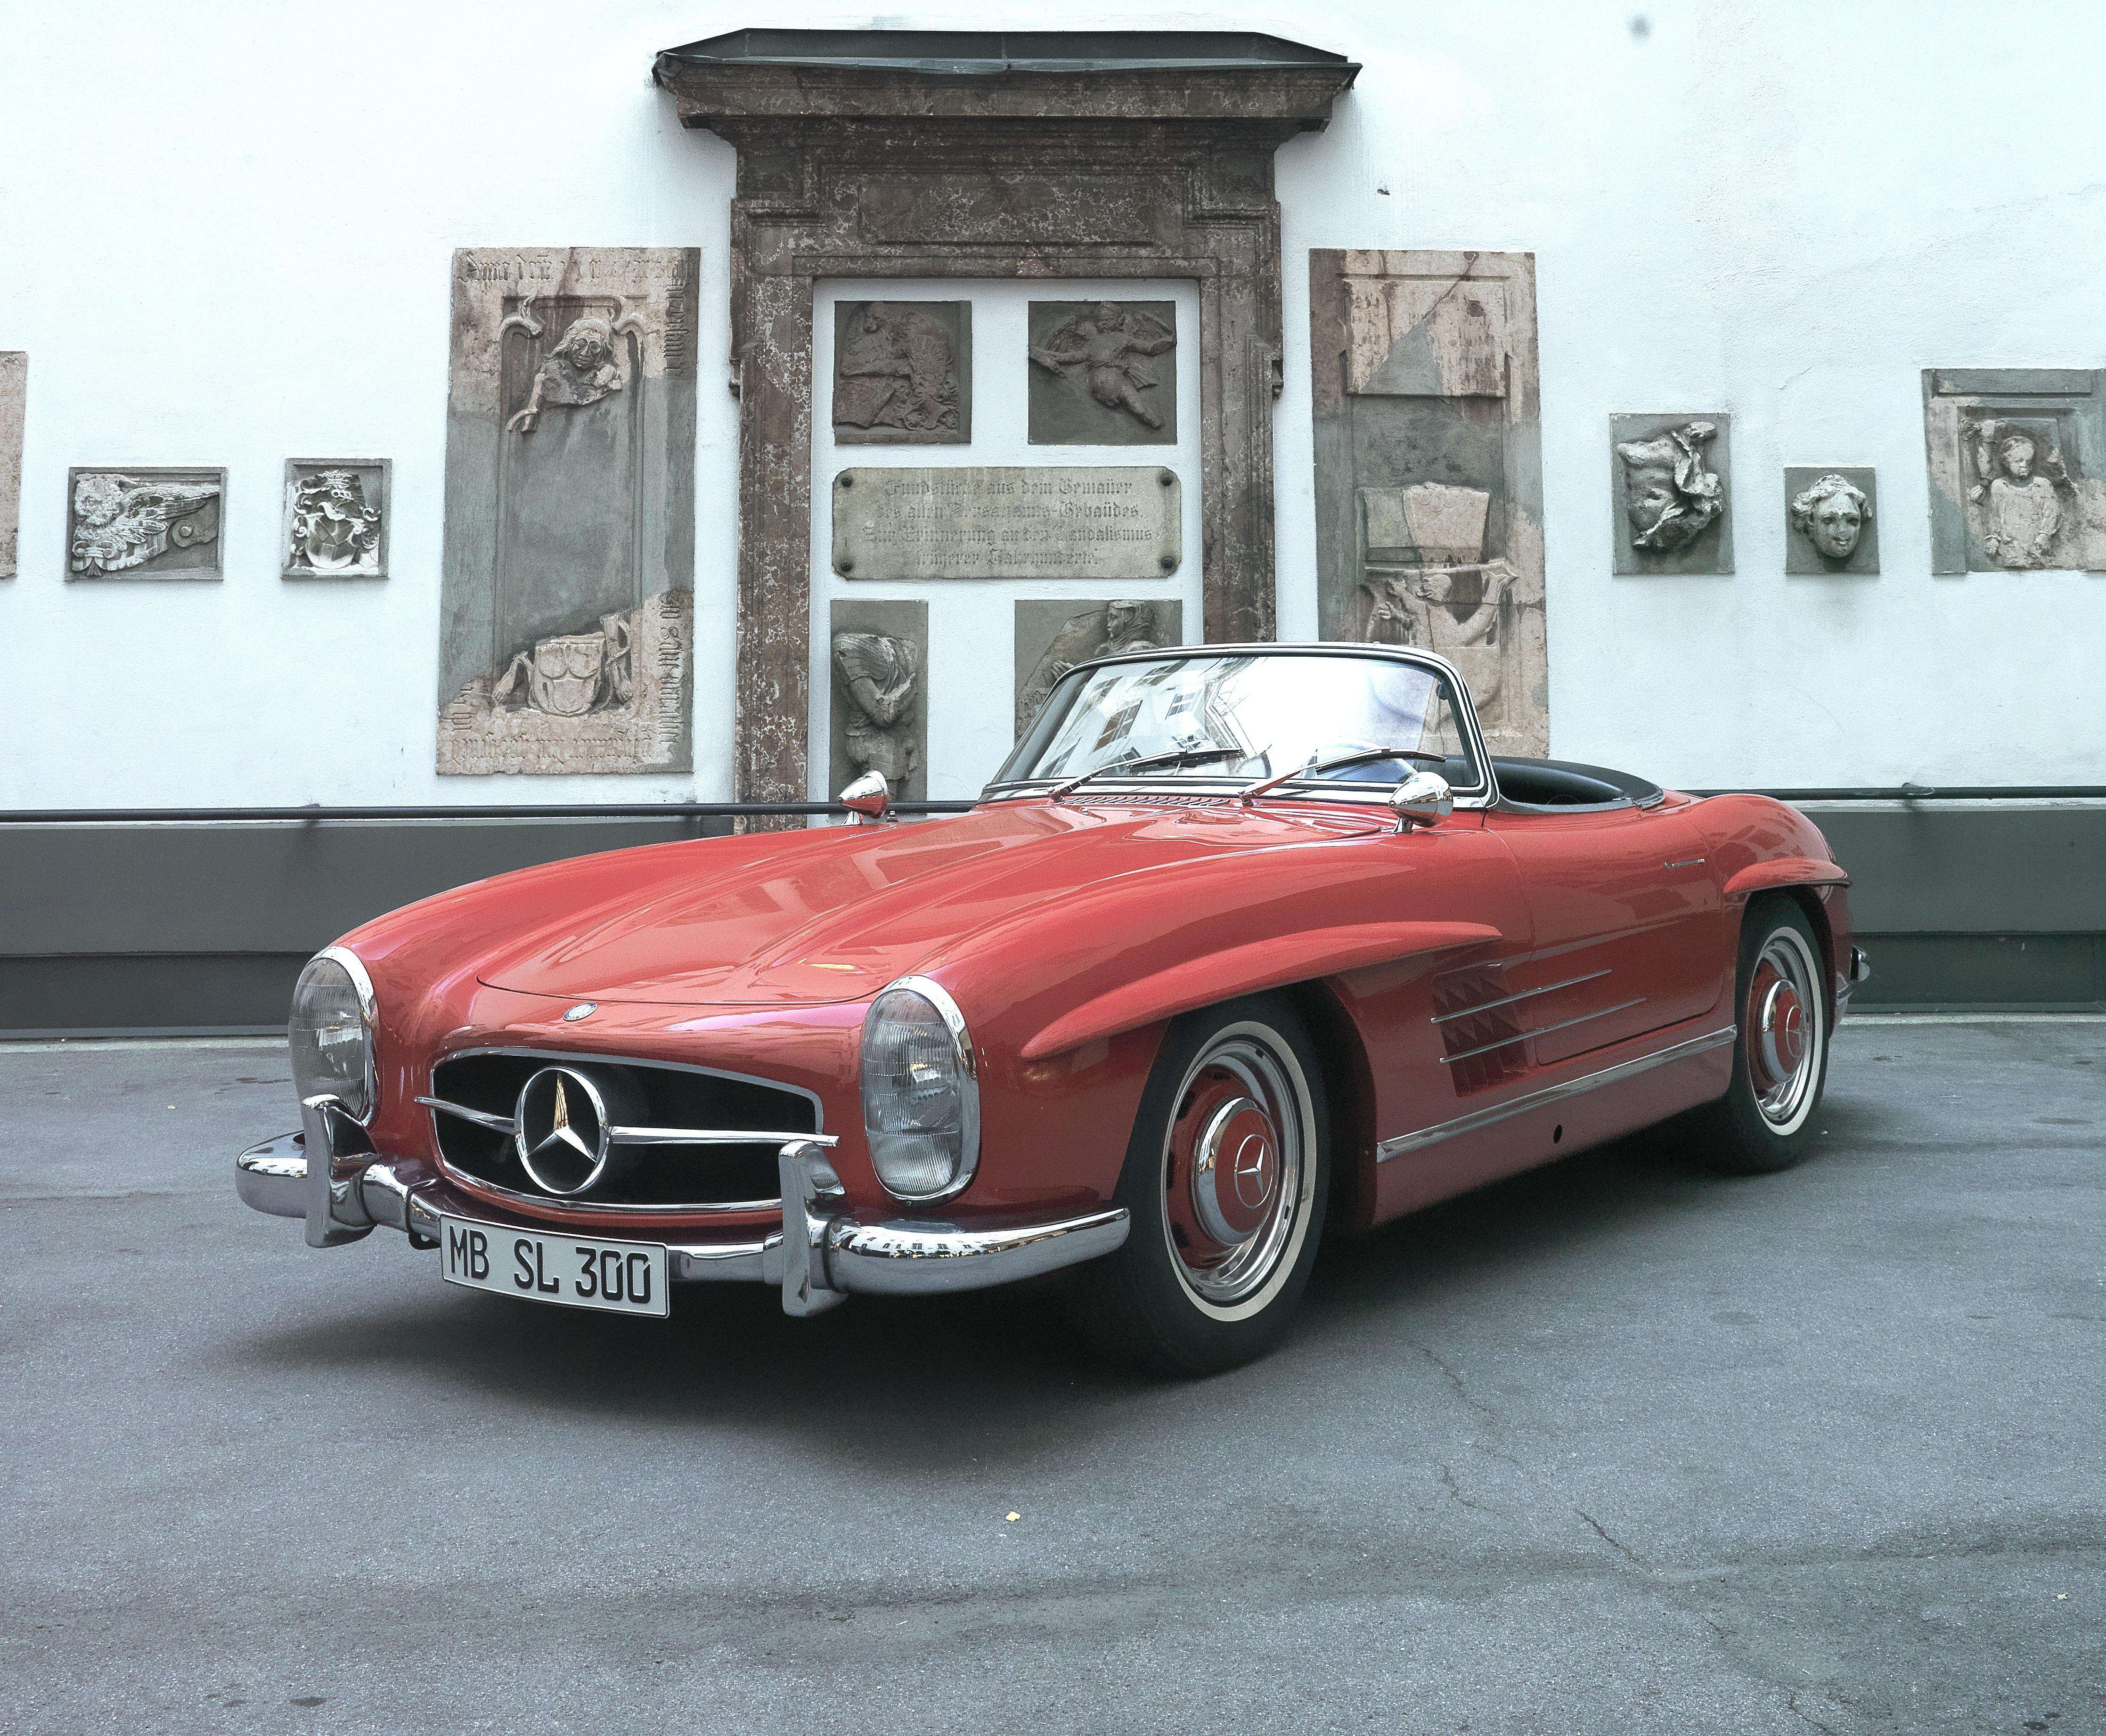 1958 Mercedes Benz 300 Sl Roadster Classic Cars 2016 10 15 Realized Price Eur 1 067 000 Dorotheum